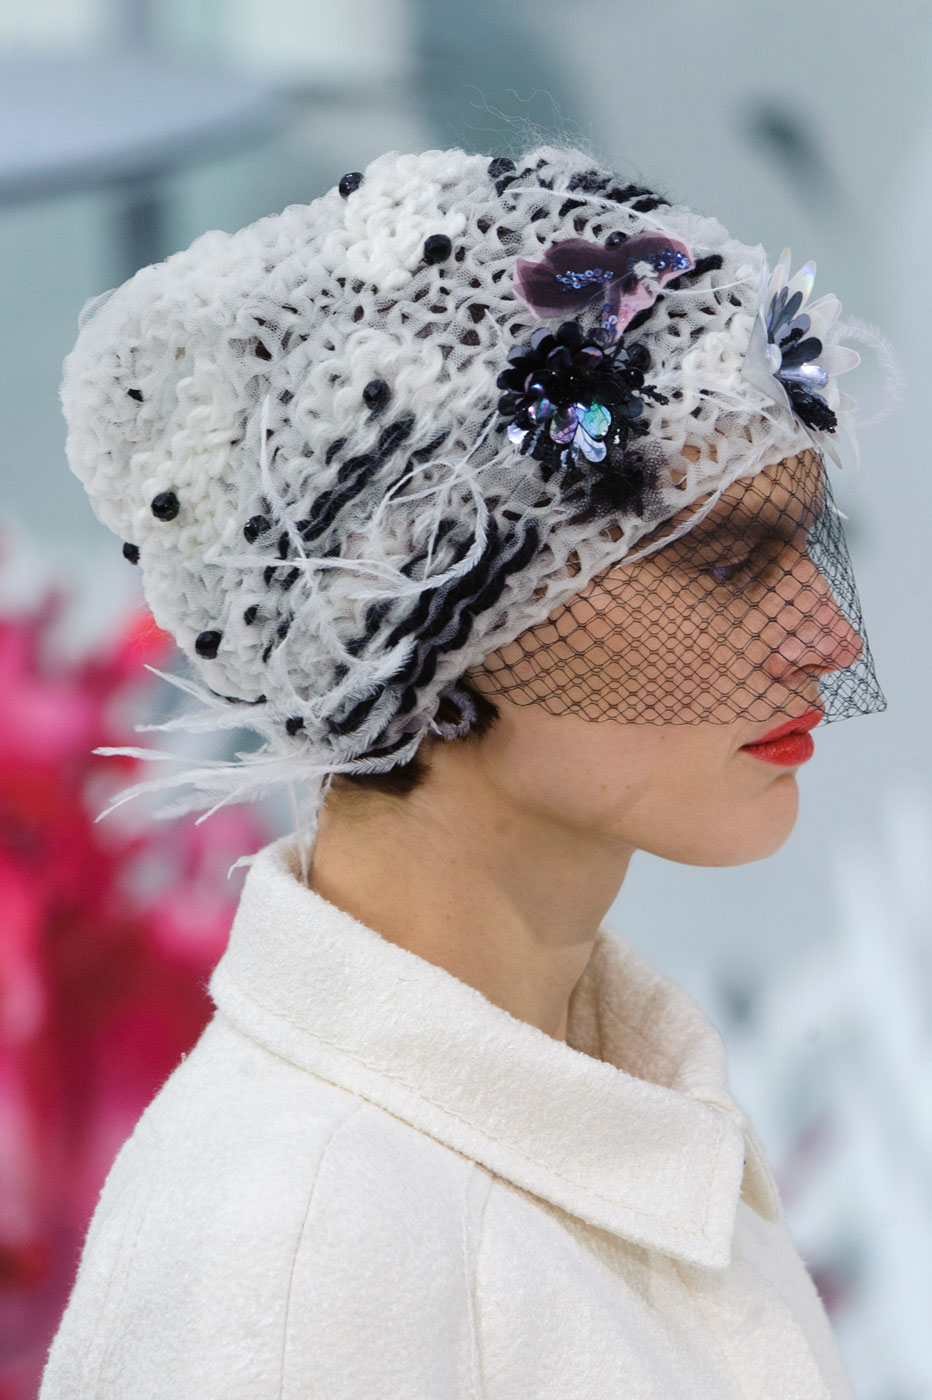 Chanel-fashion-runway-show-close-ups-haute-couture-paris-spring-summer-2015-the-impression-036